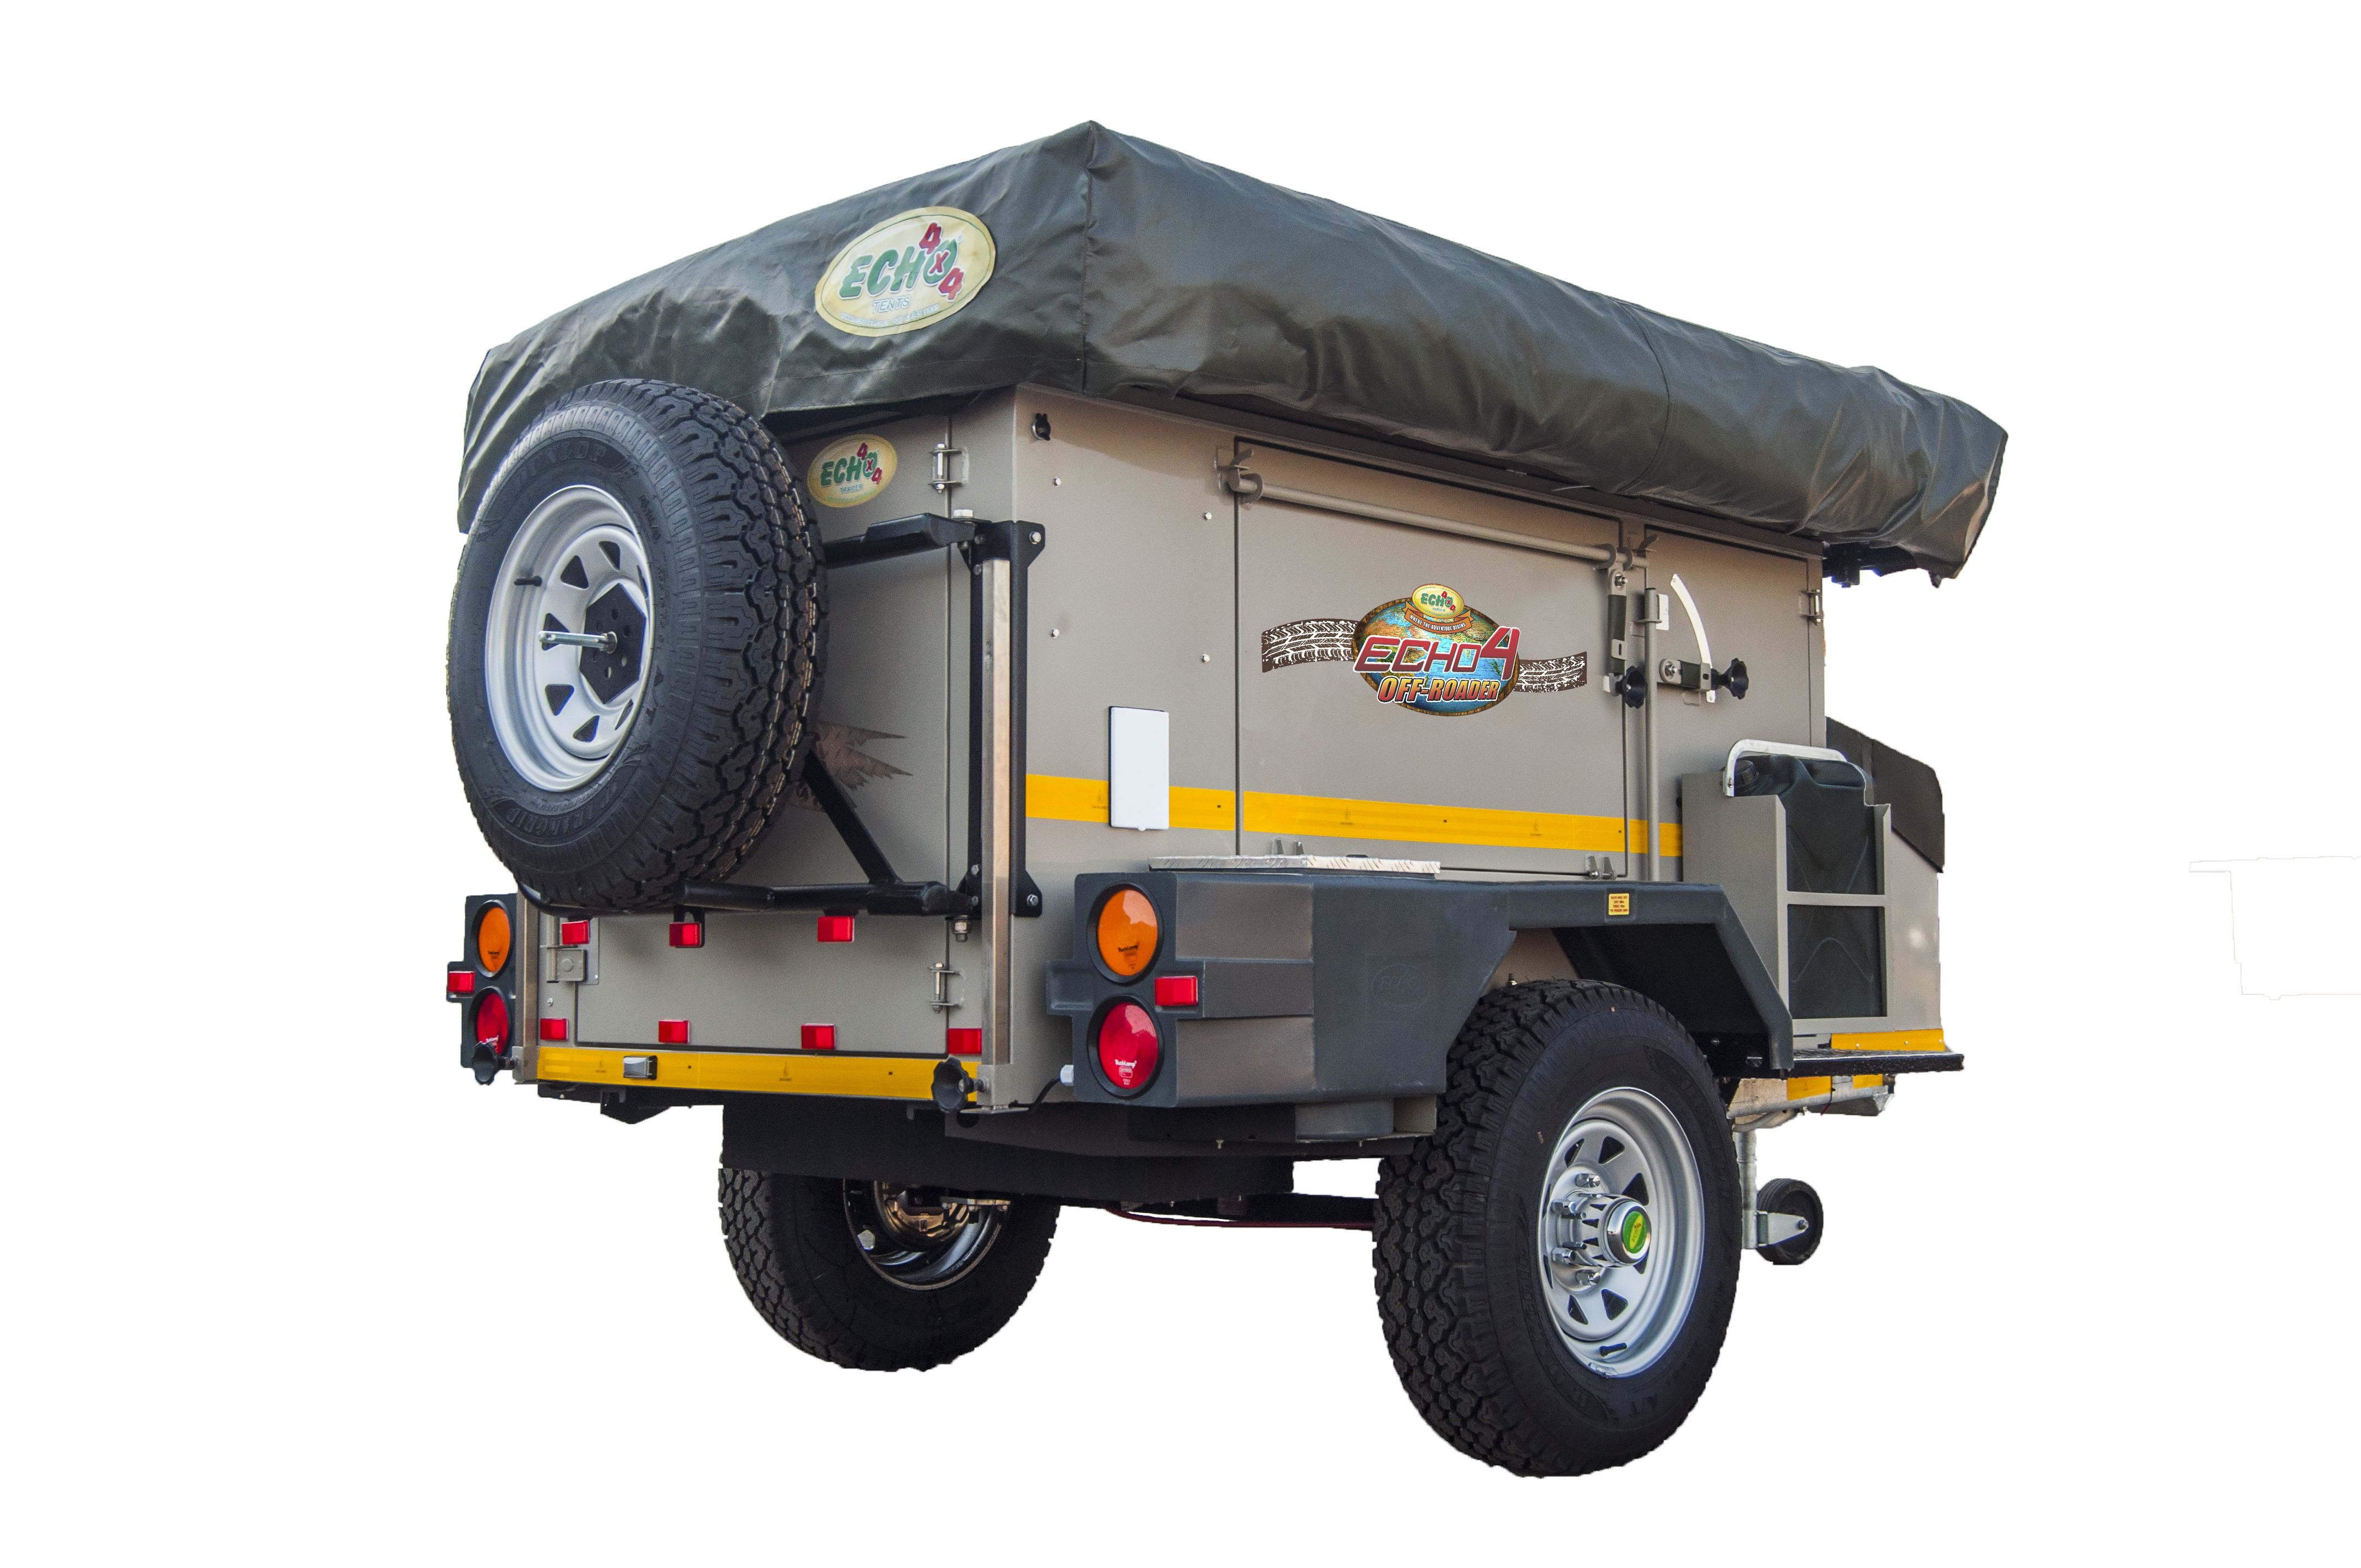 Safari trailers and c&ers for Echo trailer tents and rooftop tents get that off-road c&ing experience with all the luxuries you could imagine !  sc 1 st  Pinterest & Echo 4 extreme off-road trailer | Rv | Pinterest | Trailer tent ...